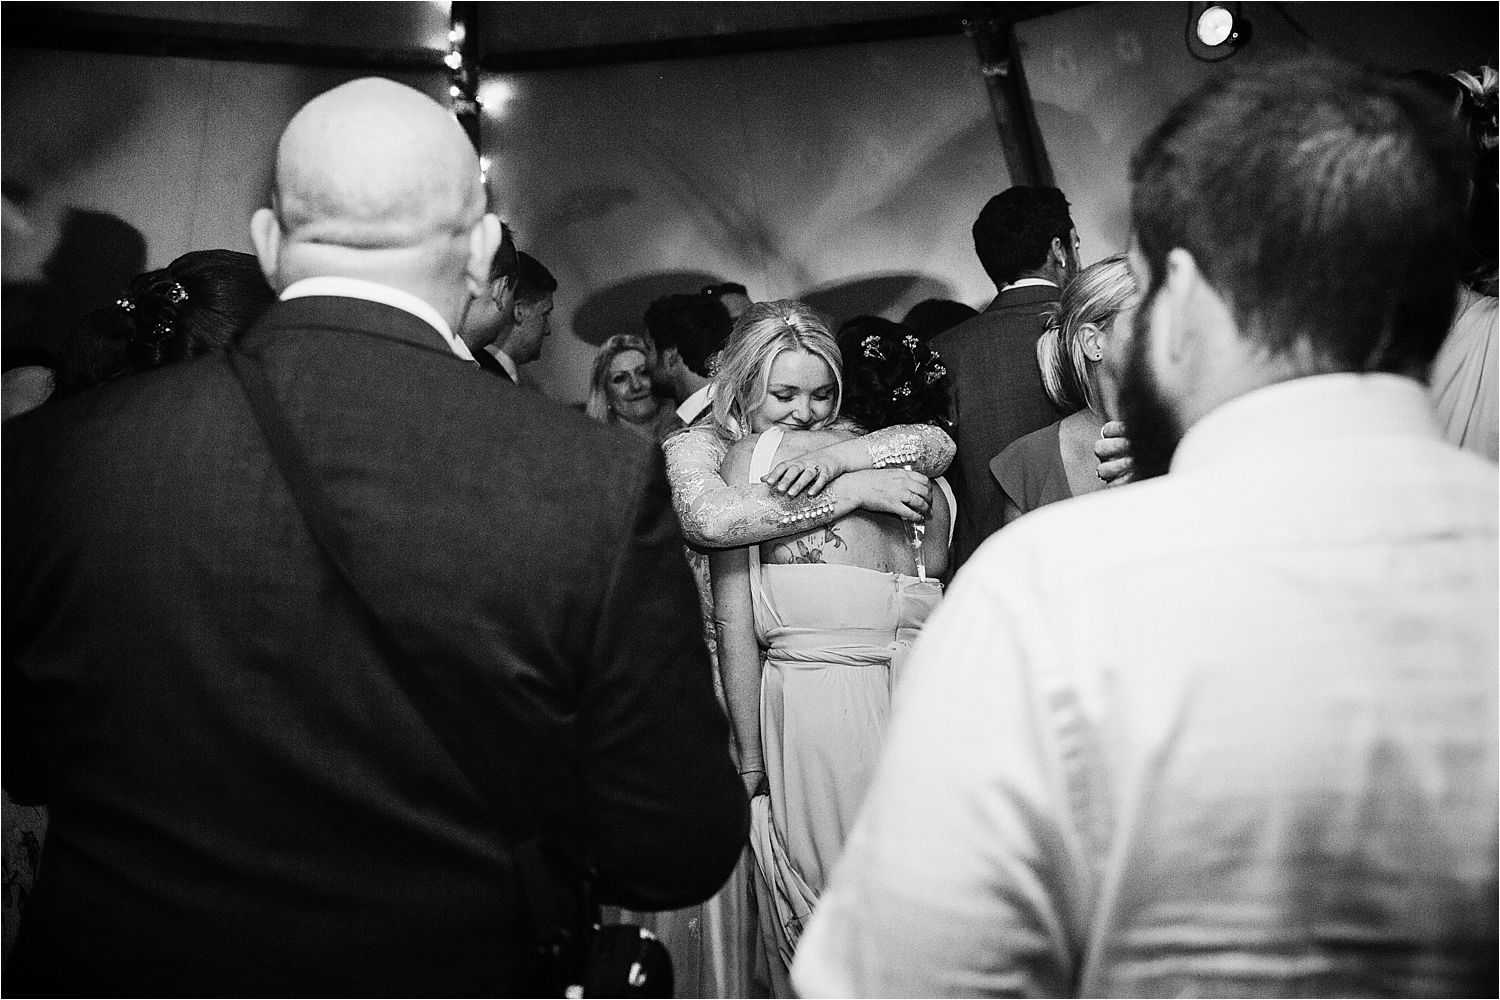 Bride embraces bridesmaid on dancefloor in Country Tipis wedding